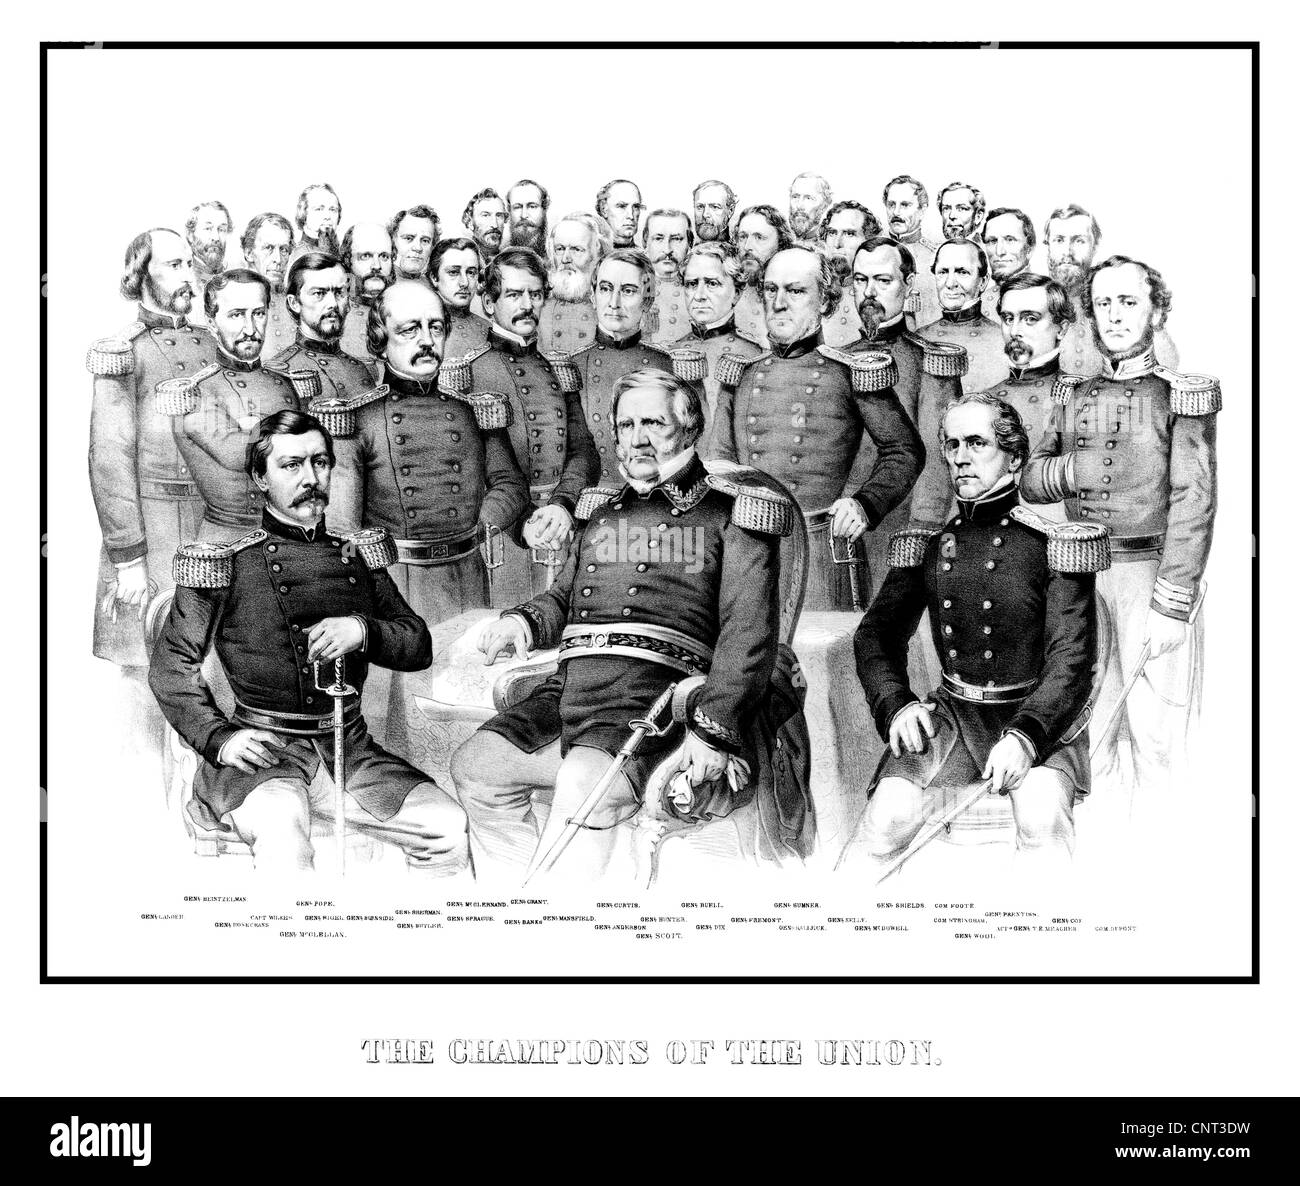 Vintage American Civil War print featuring a group portrait of early war Union Generals. - Stock Image